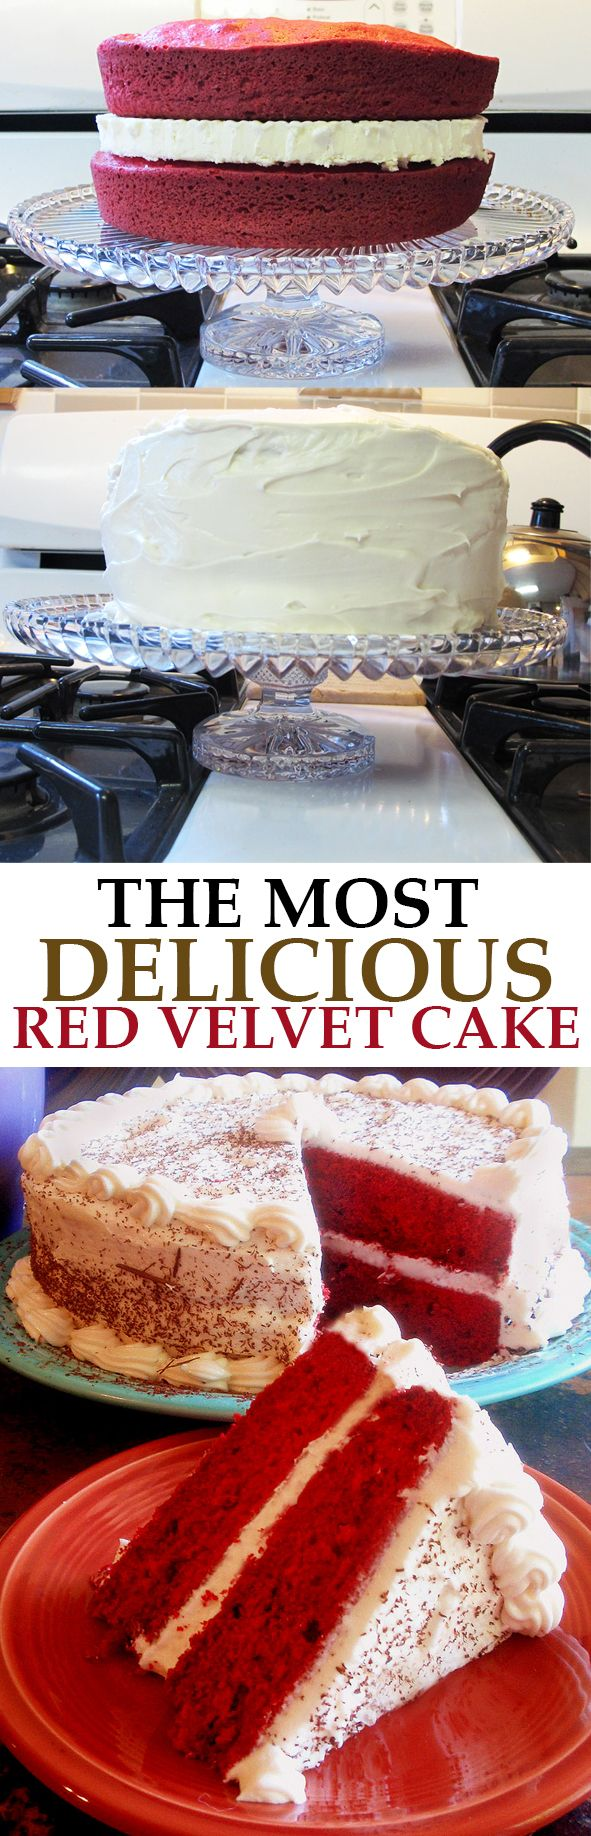 red velvet cake recipe cream cheese white chocolate frosting shaved ideas valentines day most delicious easy better baking bible blog